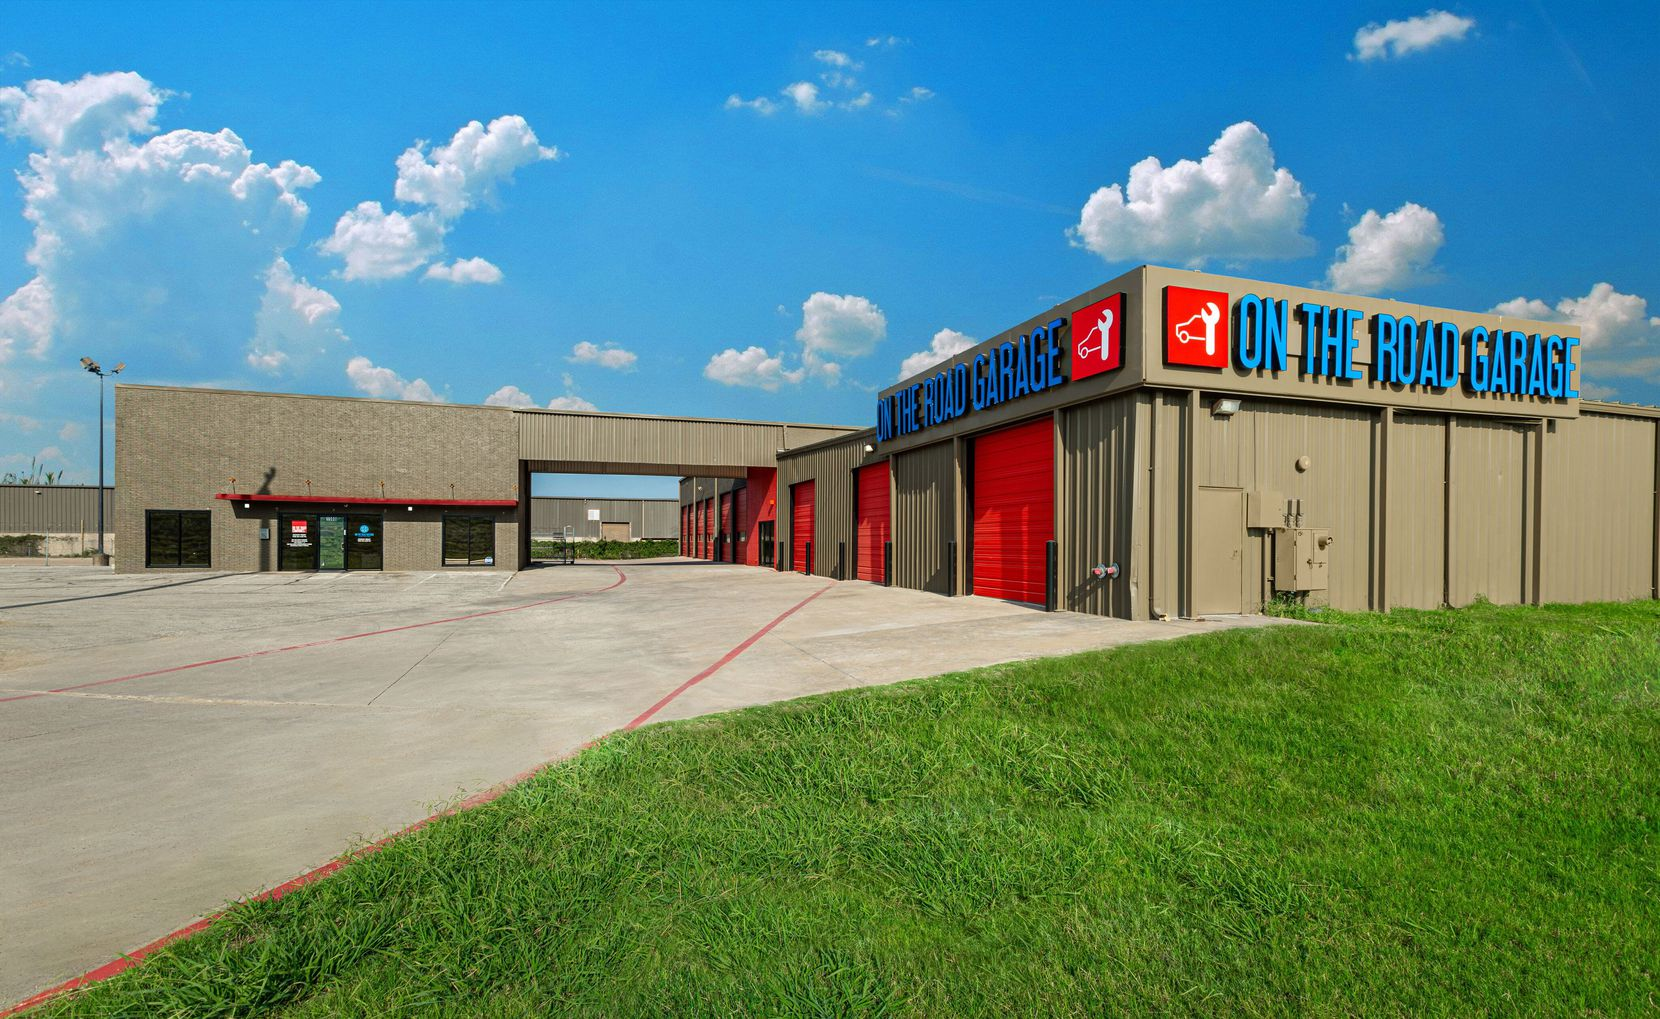 On the Road Garage in Irving opened in July 2020. It provides employment opportunities in the tech-focused collision repair business.